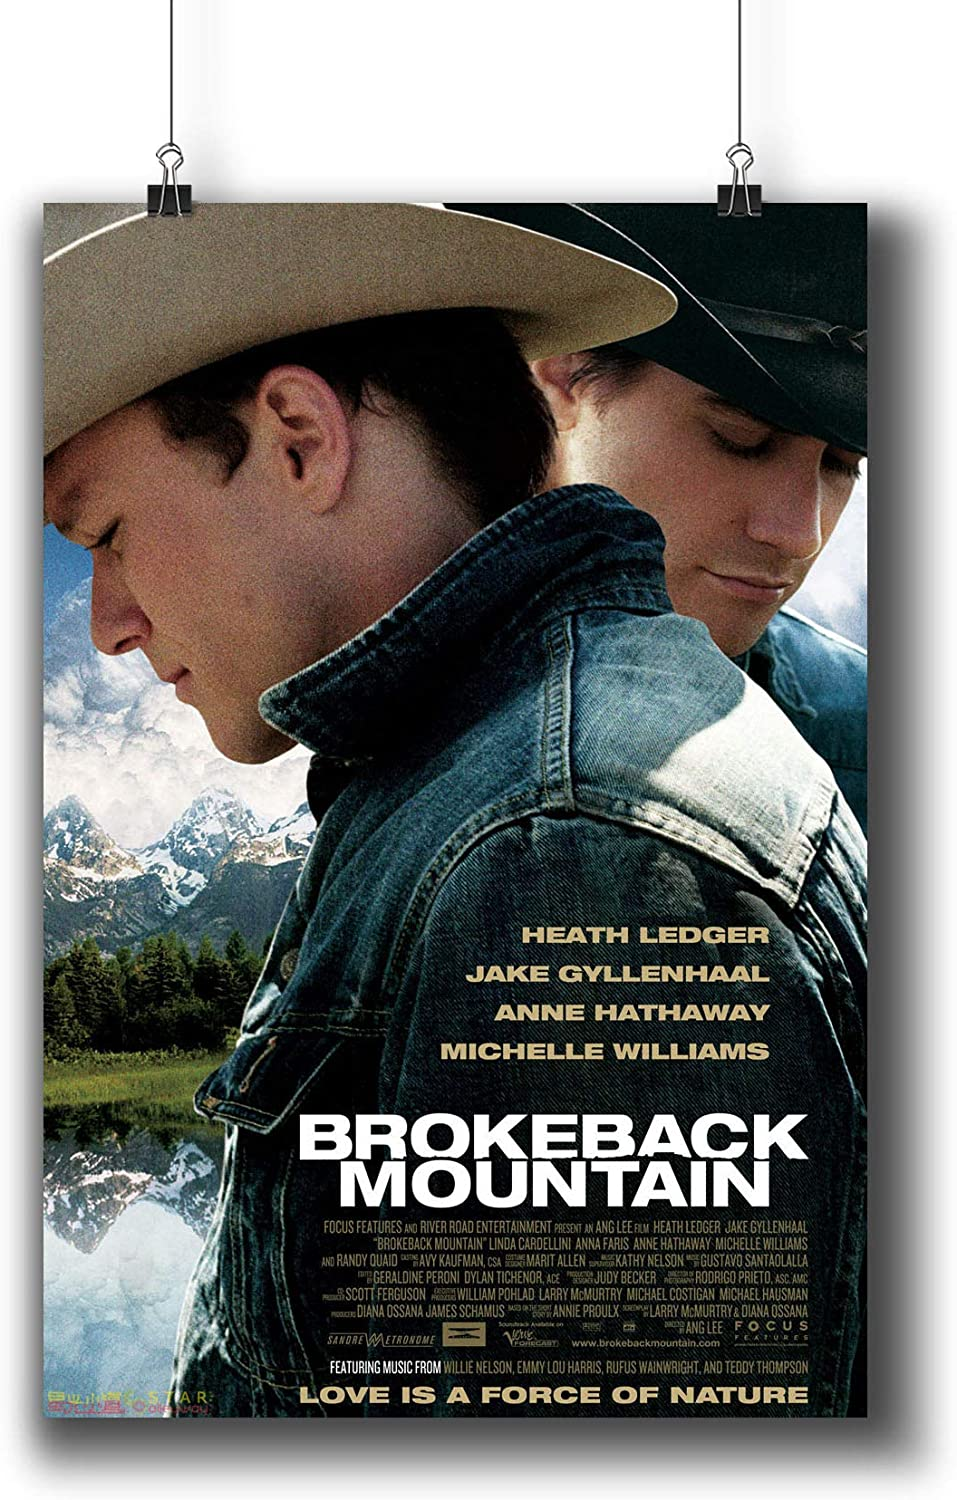 Amazon Com Brokeback Mountain 2005 Movie Poster Small Prints 690 001 Wall Art Decor For Dorm Bedroom Living Room A3 11x17inch 29x42cm Posters Prints